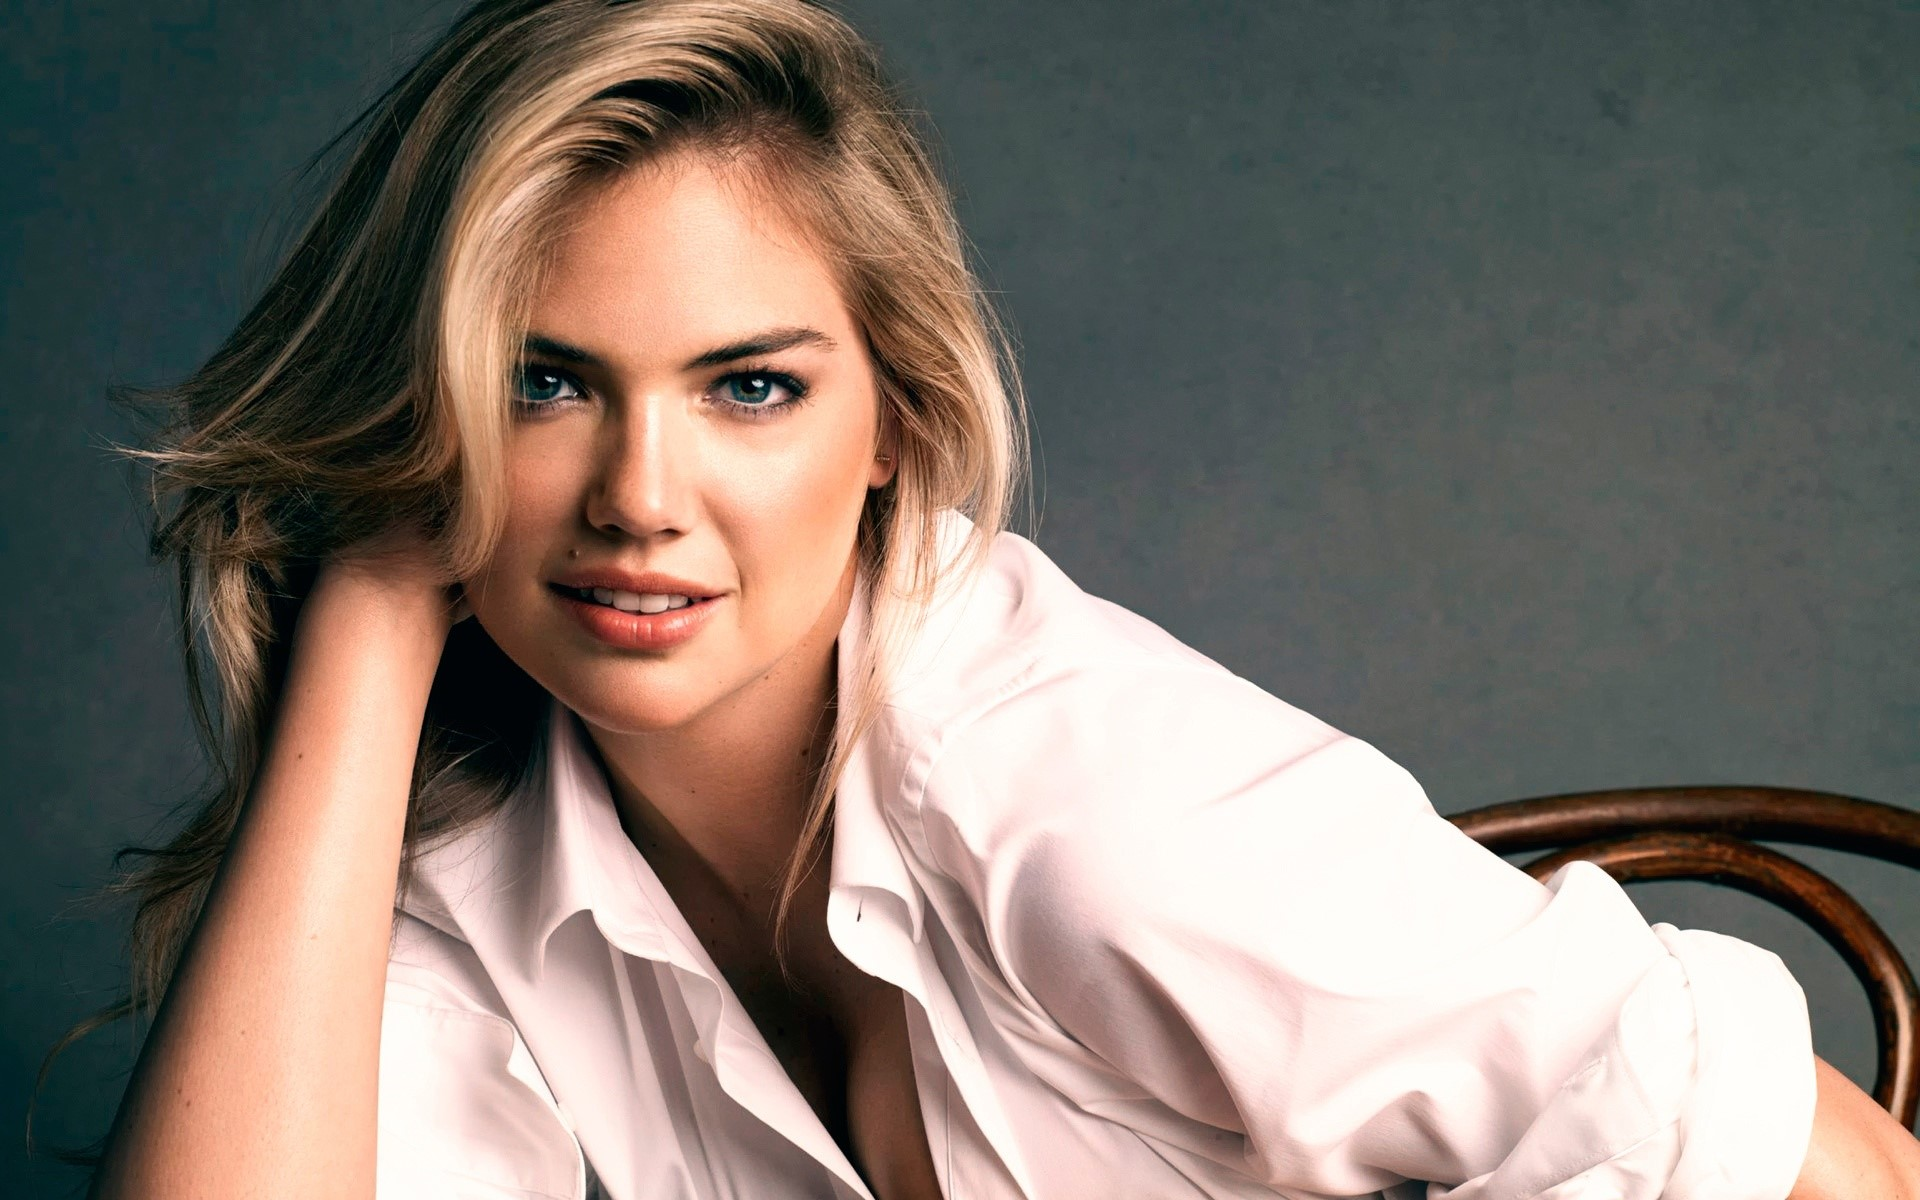 Wallpaper Model and actress Kate Upton